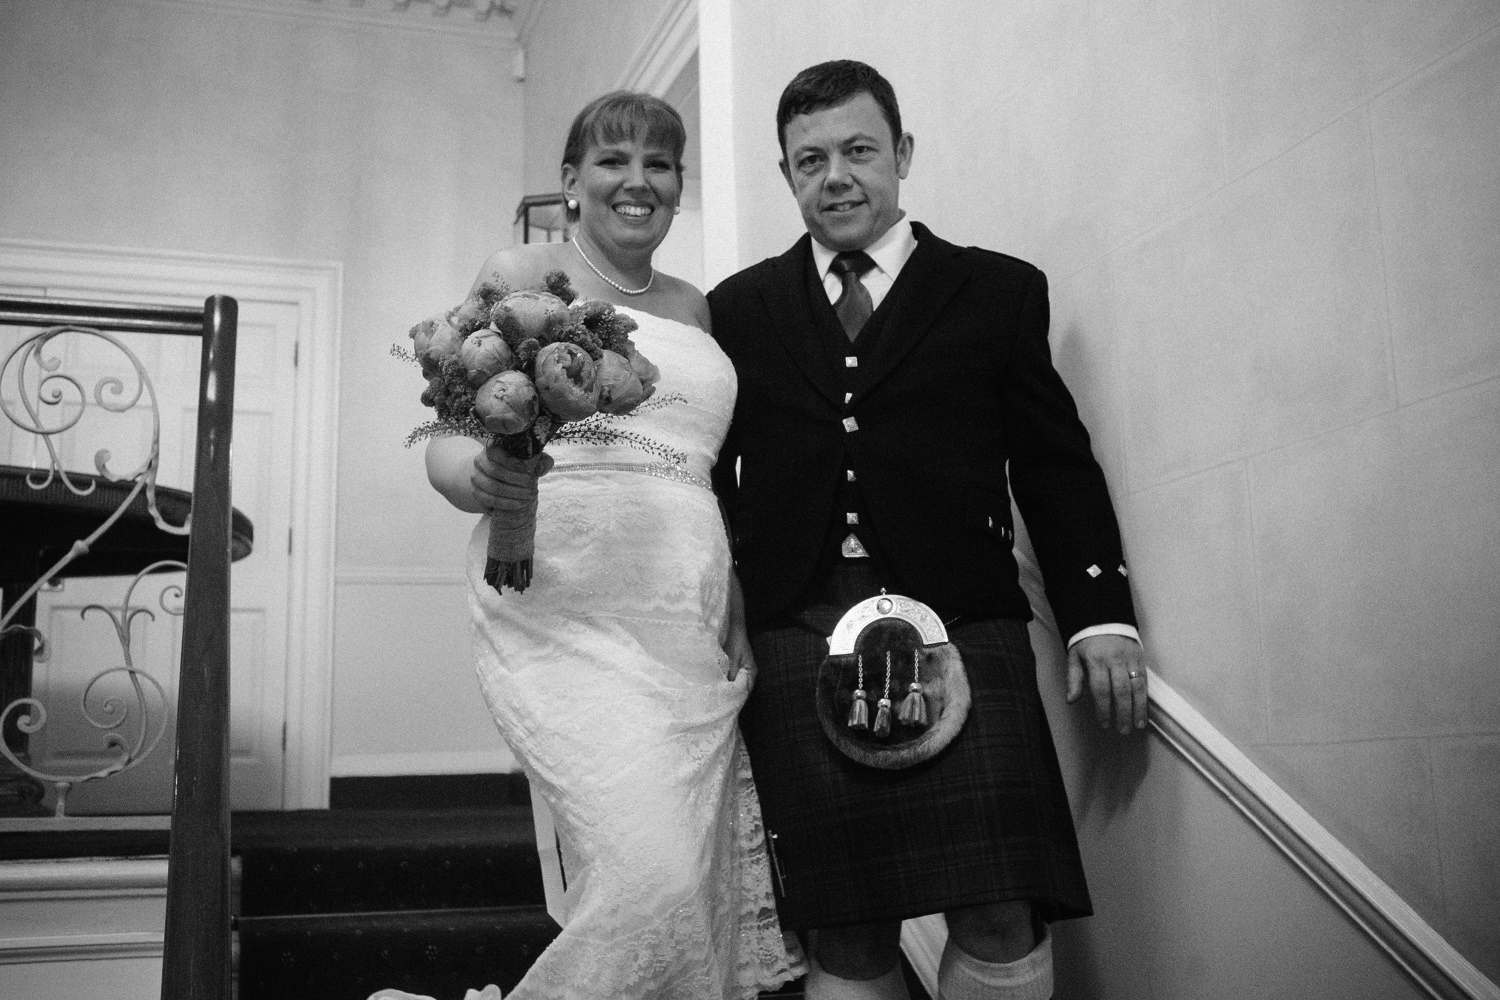 Mr and Mrs Robson-580.jpg